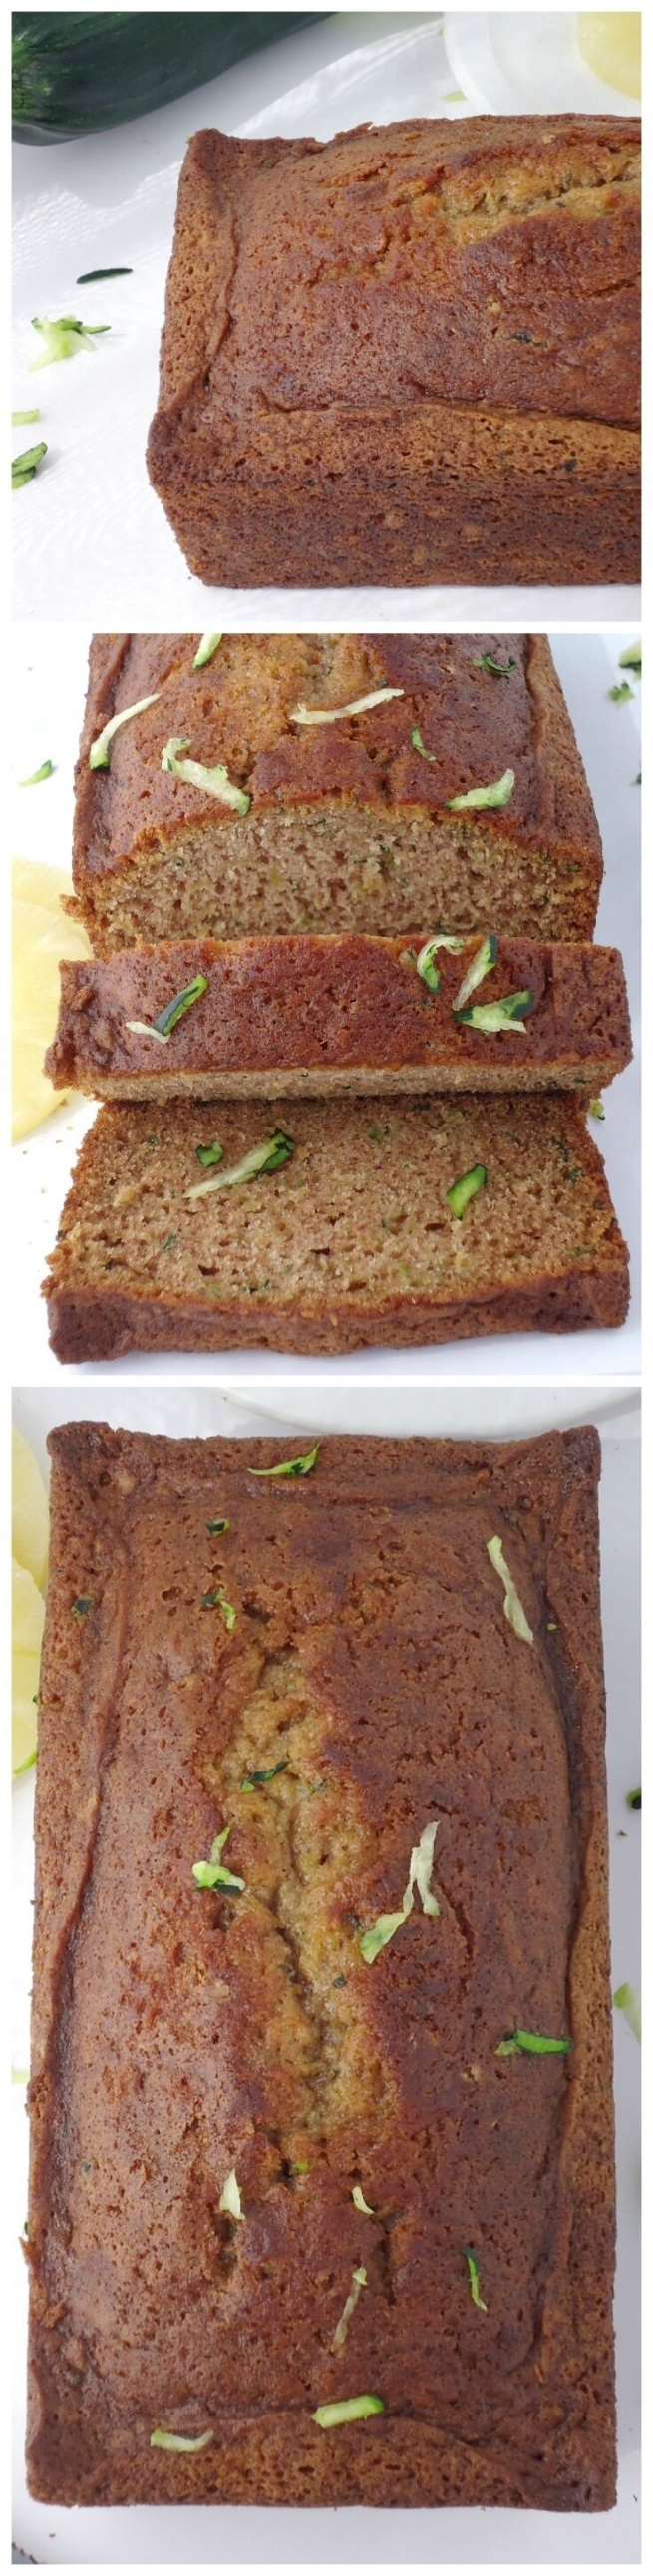 Zucchini Pineapple Bread | Unwed Housewife | Moist, dense zucchini pineapple bread that's perfect for summer. A fun, fruity twist on traditional zucchini bread. The best quick bread recipe for summer.